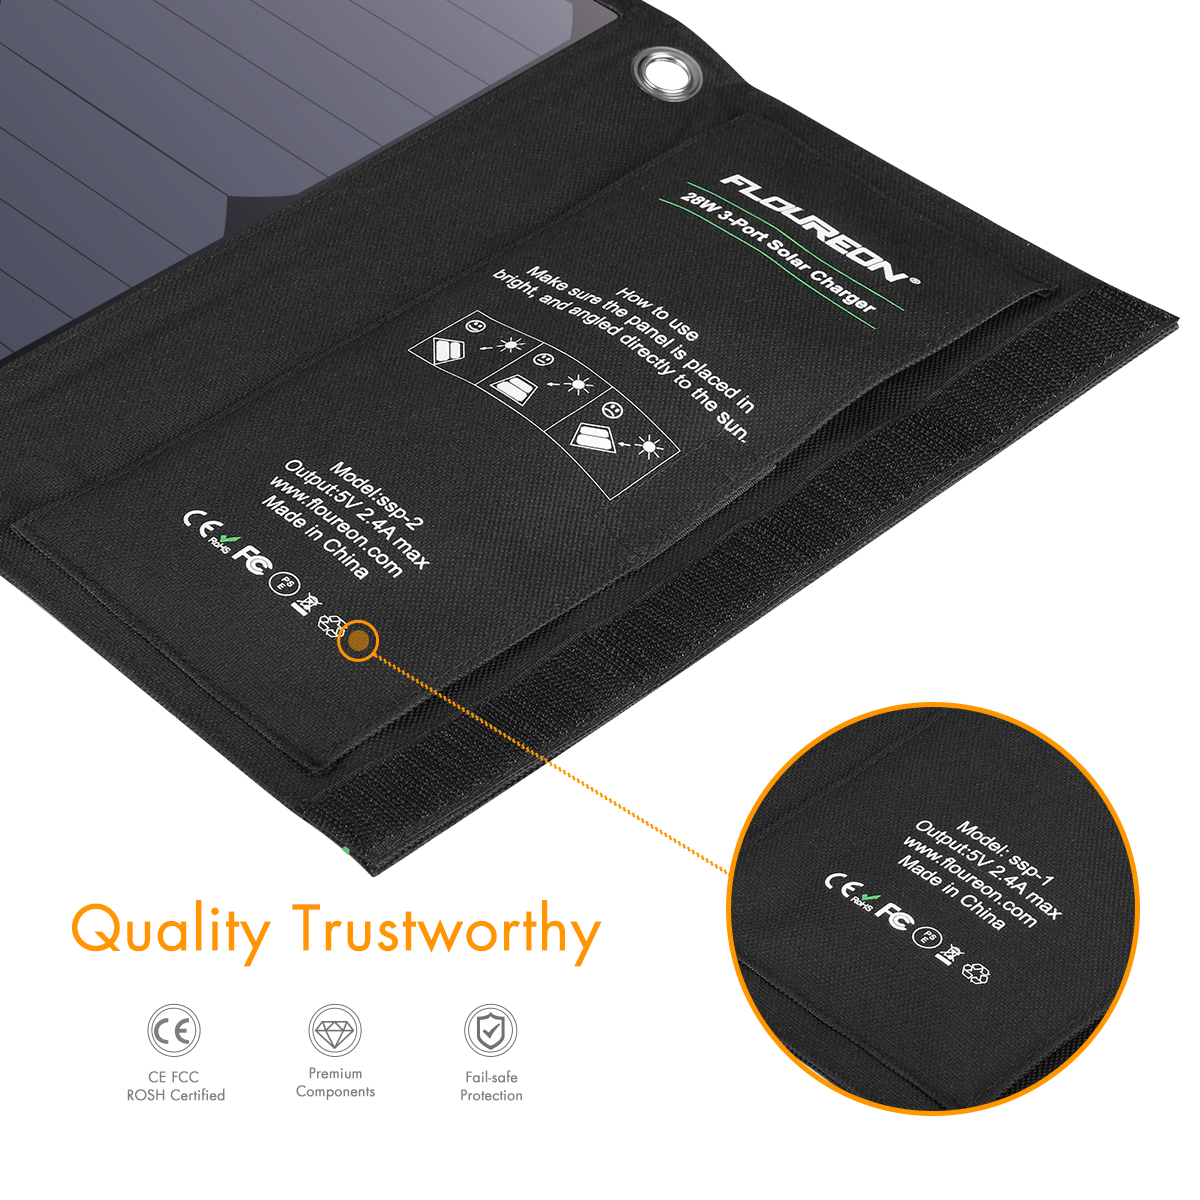 FLOUREON 28W Foldable Waterproof Solar Panel Charger Mobile Power Bank for Smartphones Tablets Triple USB Ports Outdoor 14